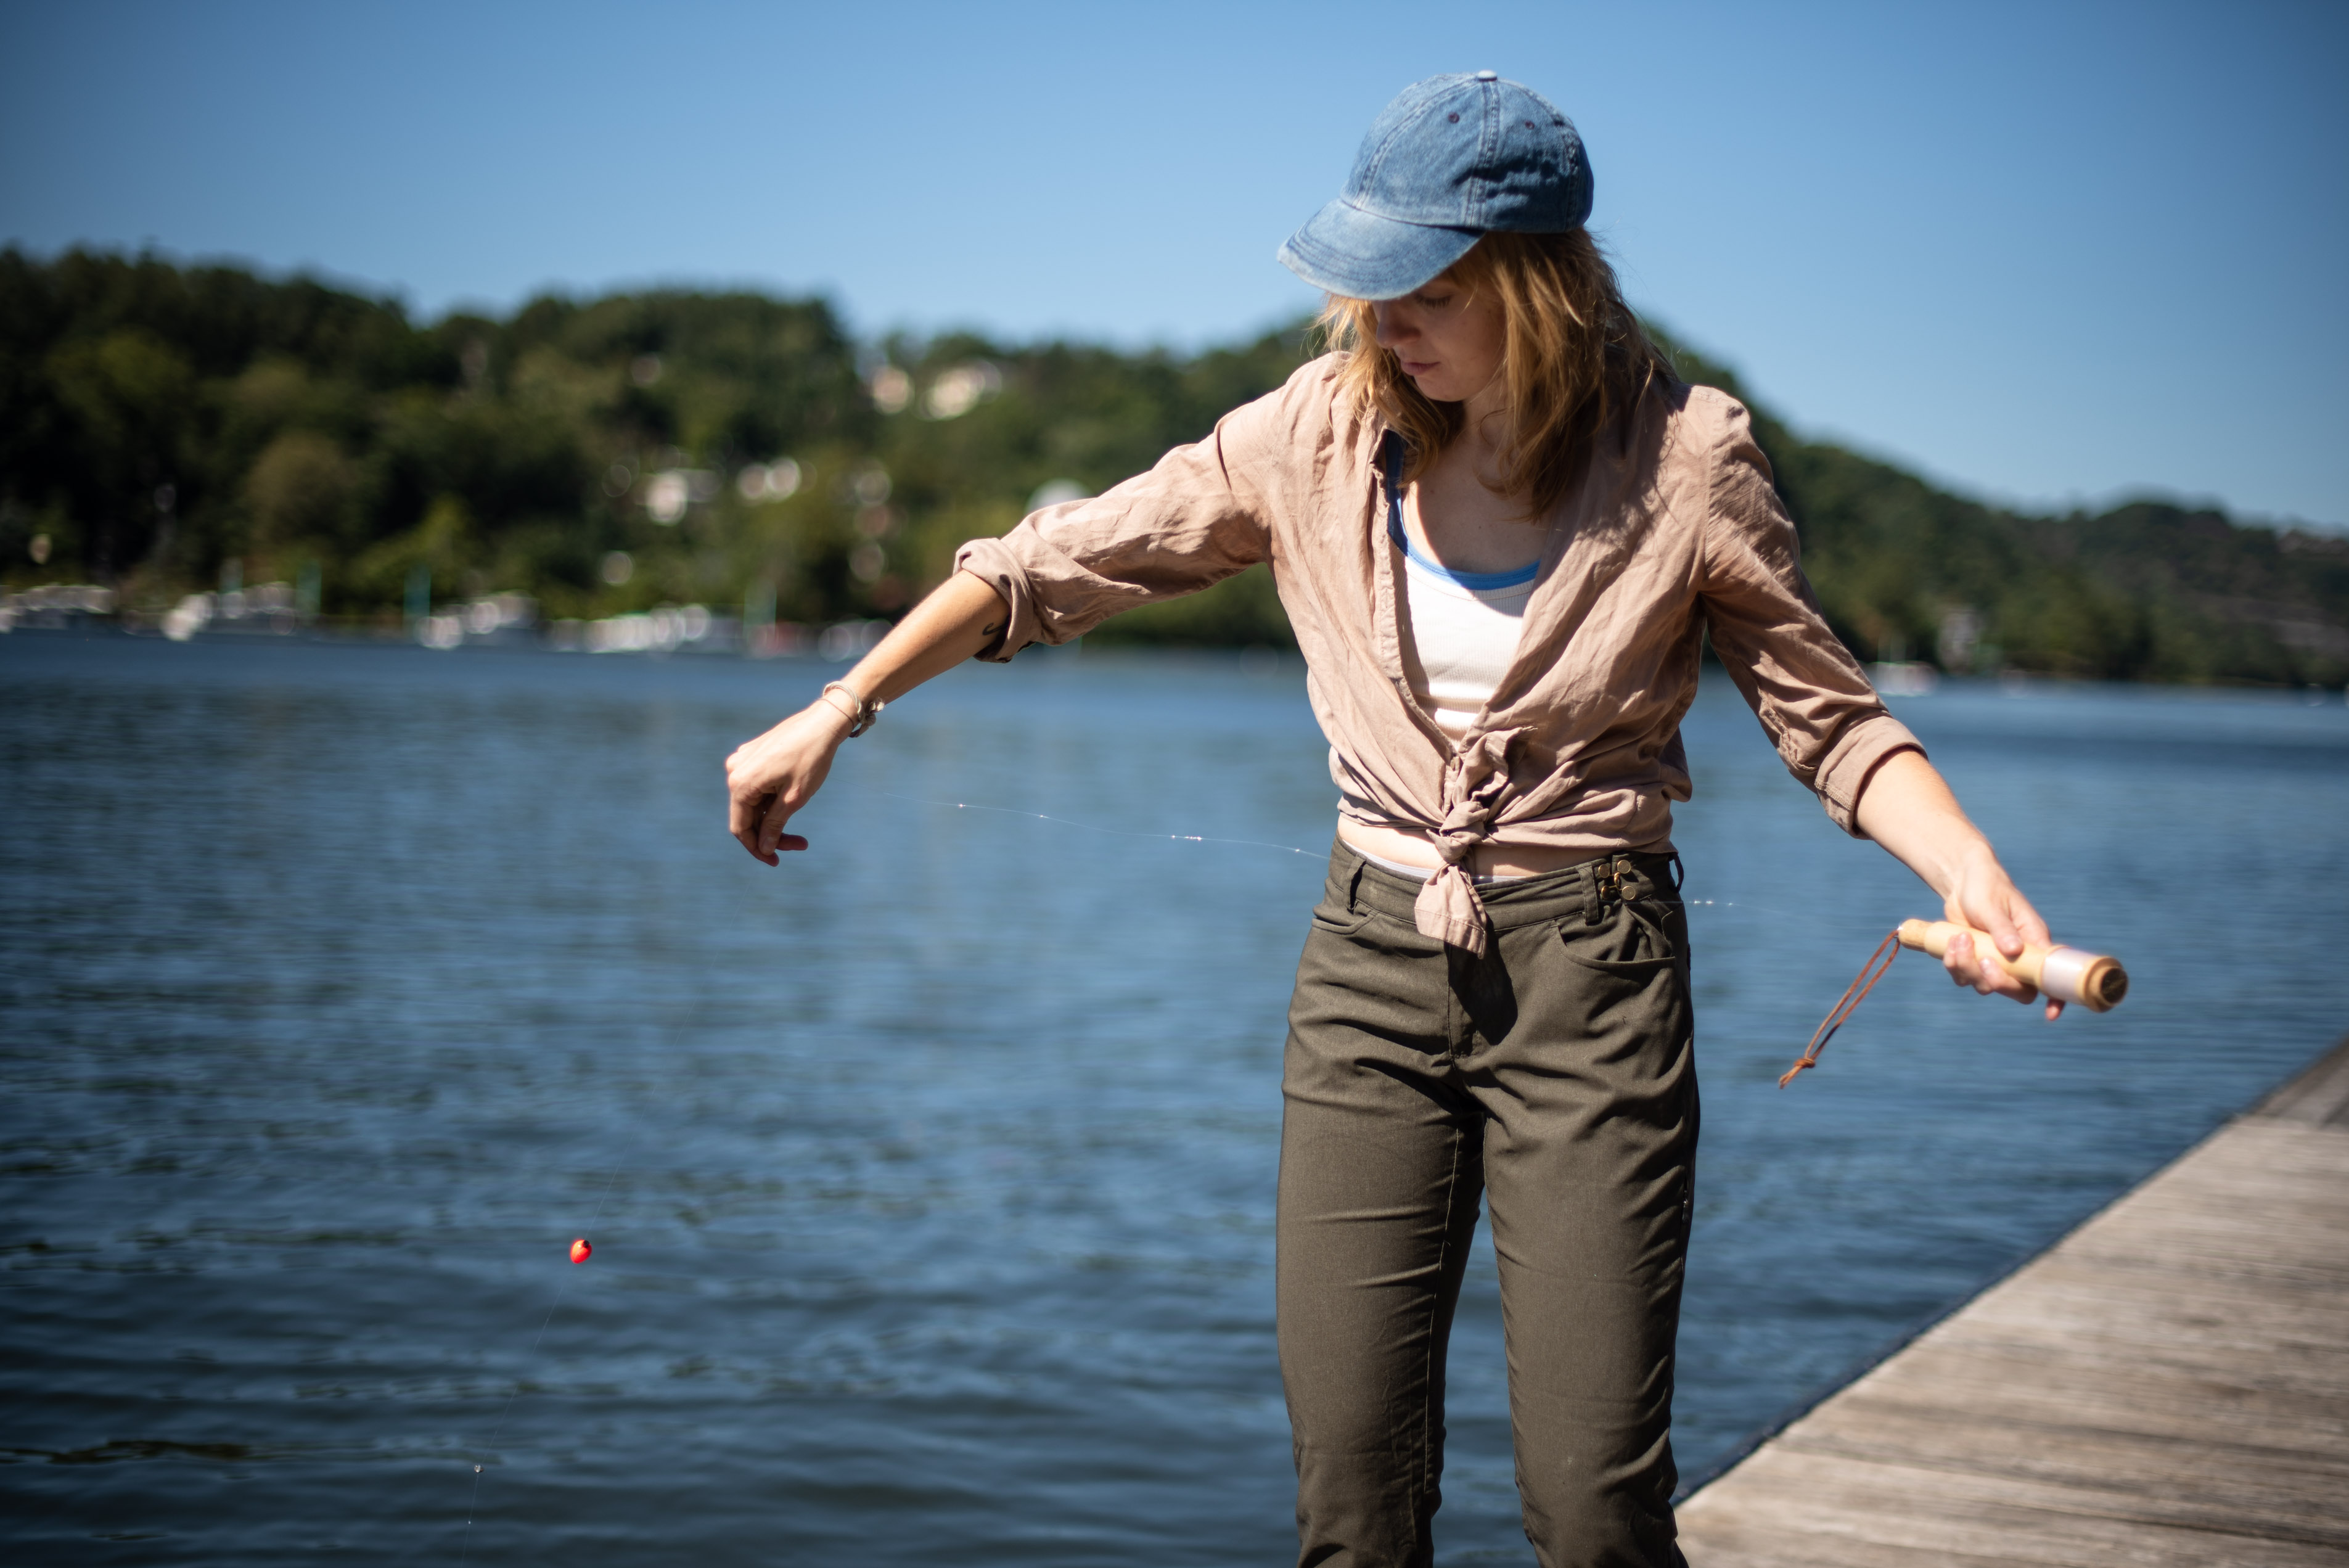 Toss-casting a portable fishing rod